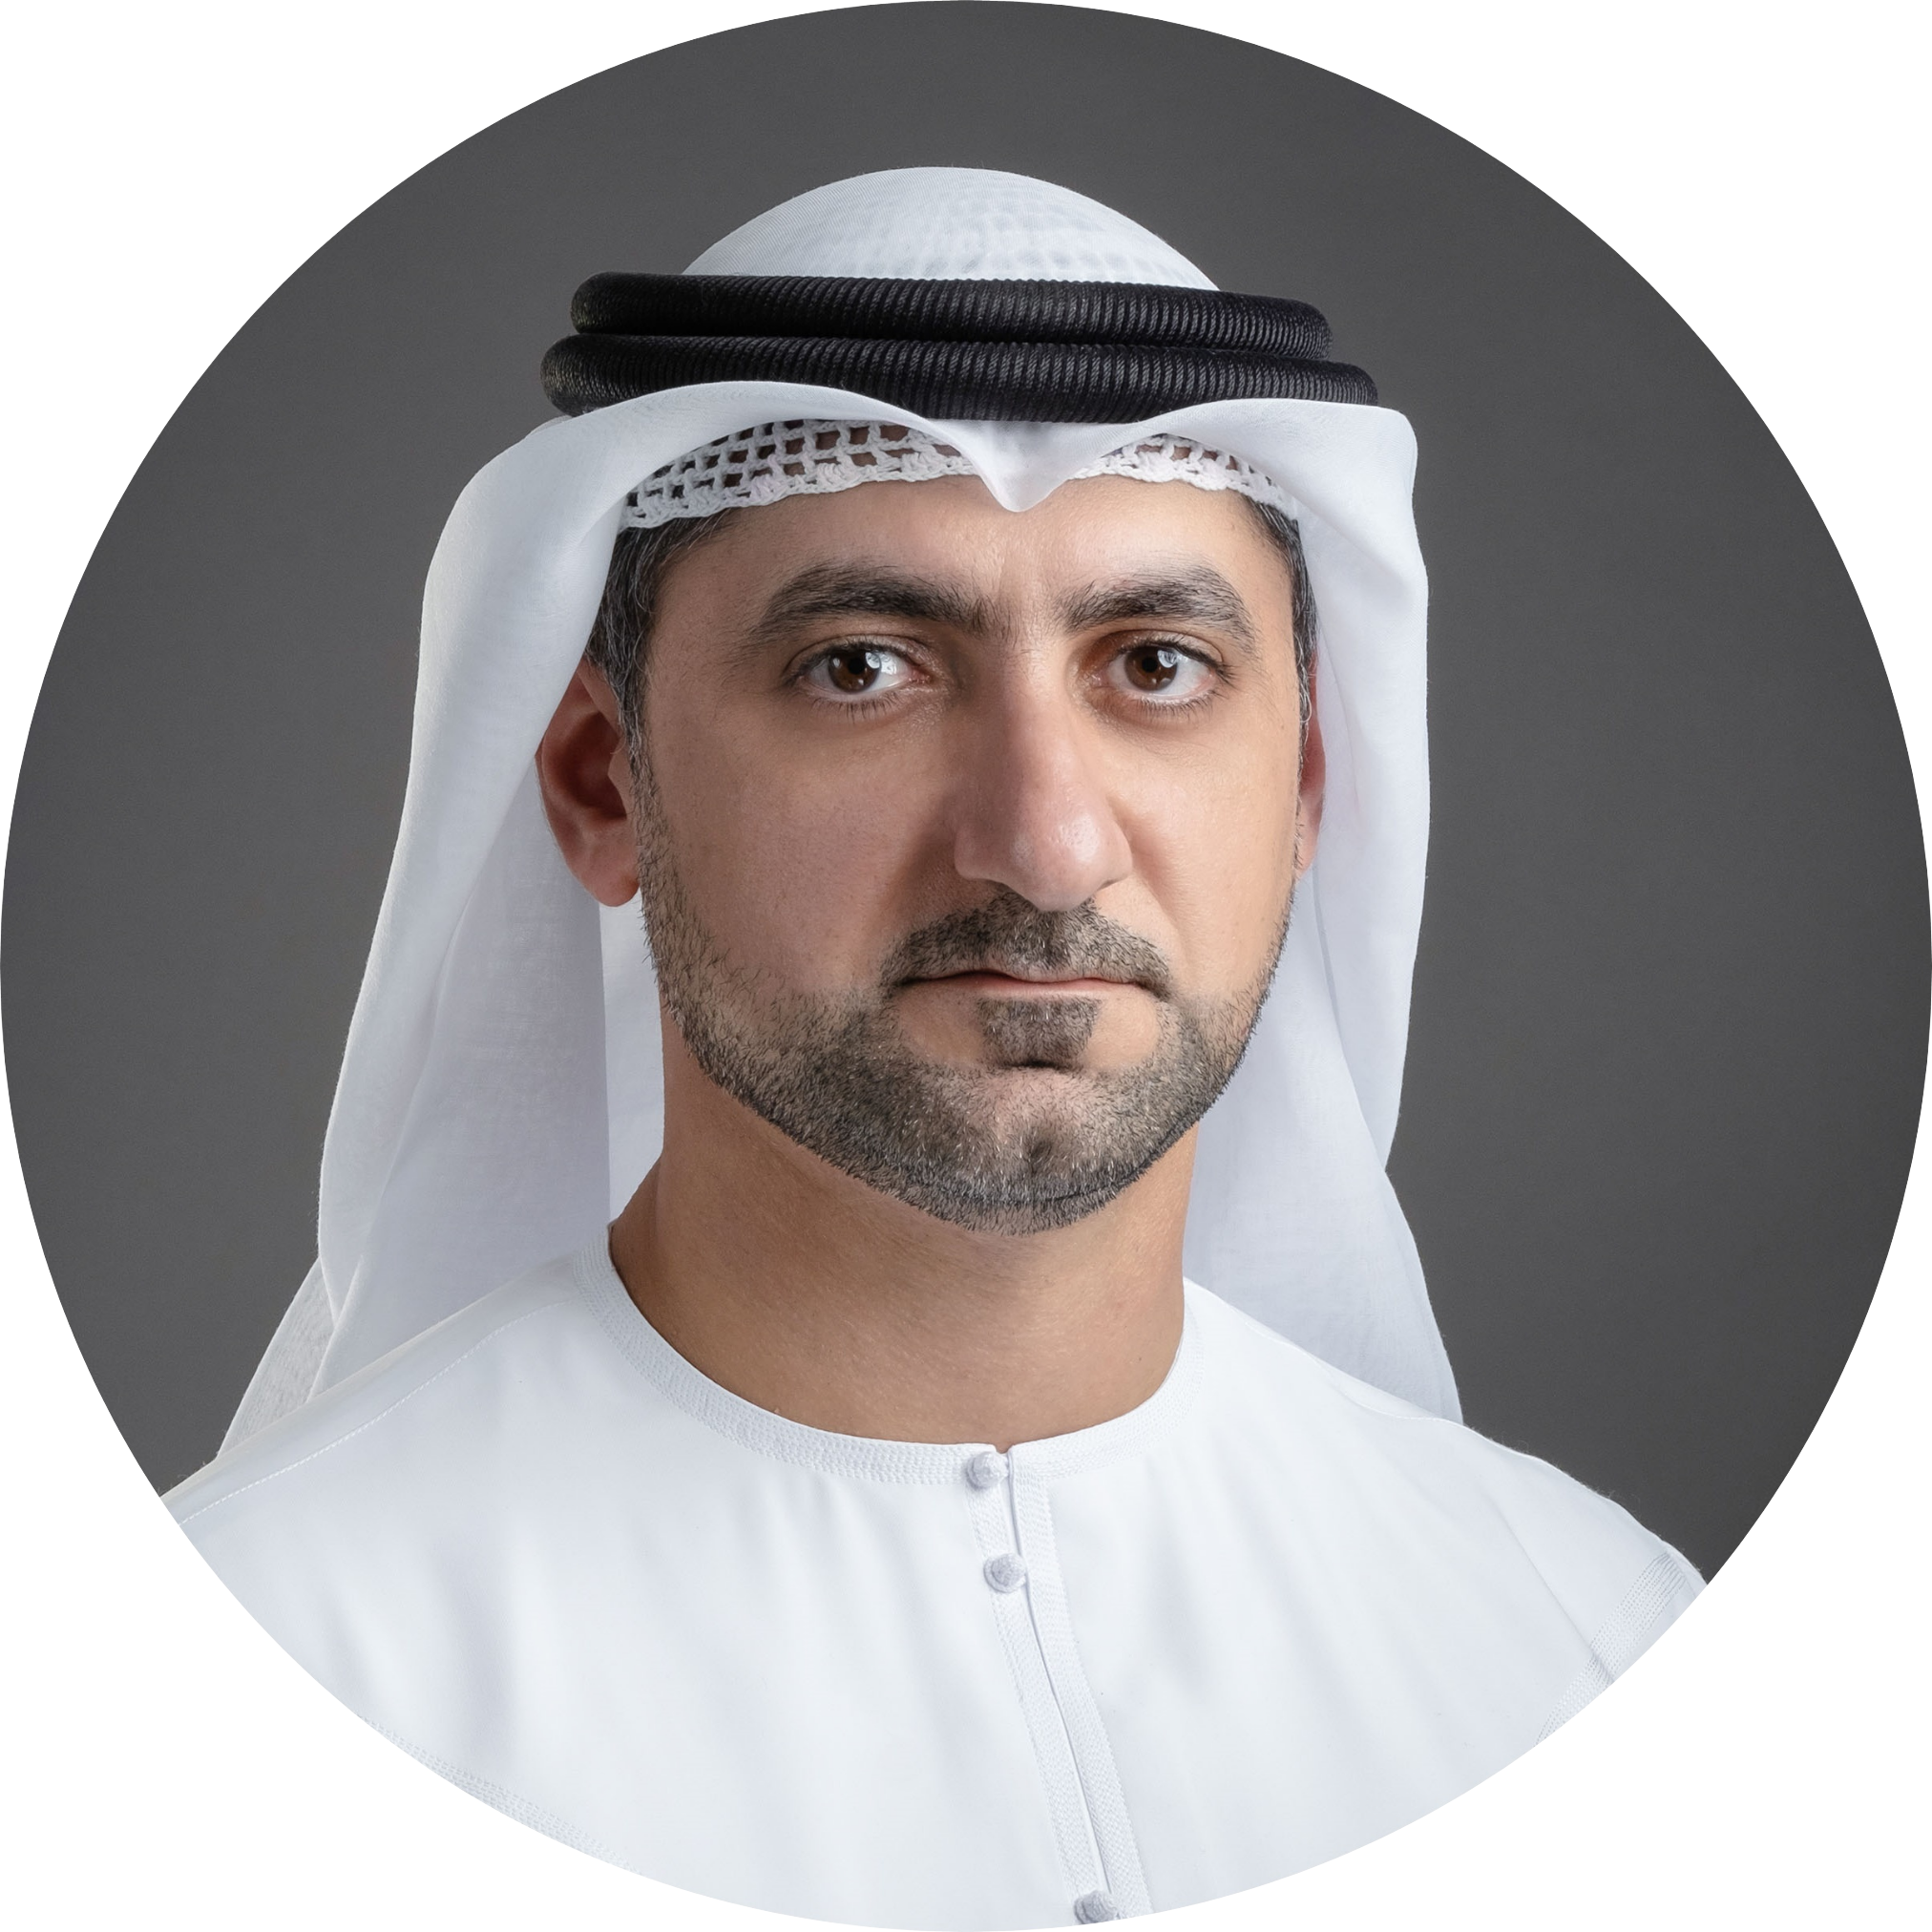 HE Mohammad Hassan, Executive Director, the National Statistics and Data Sector